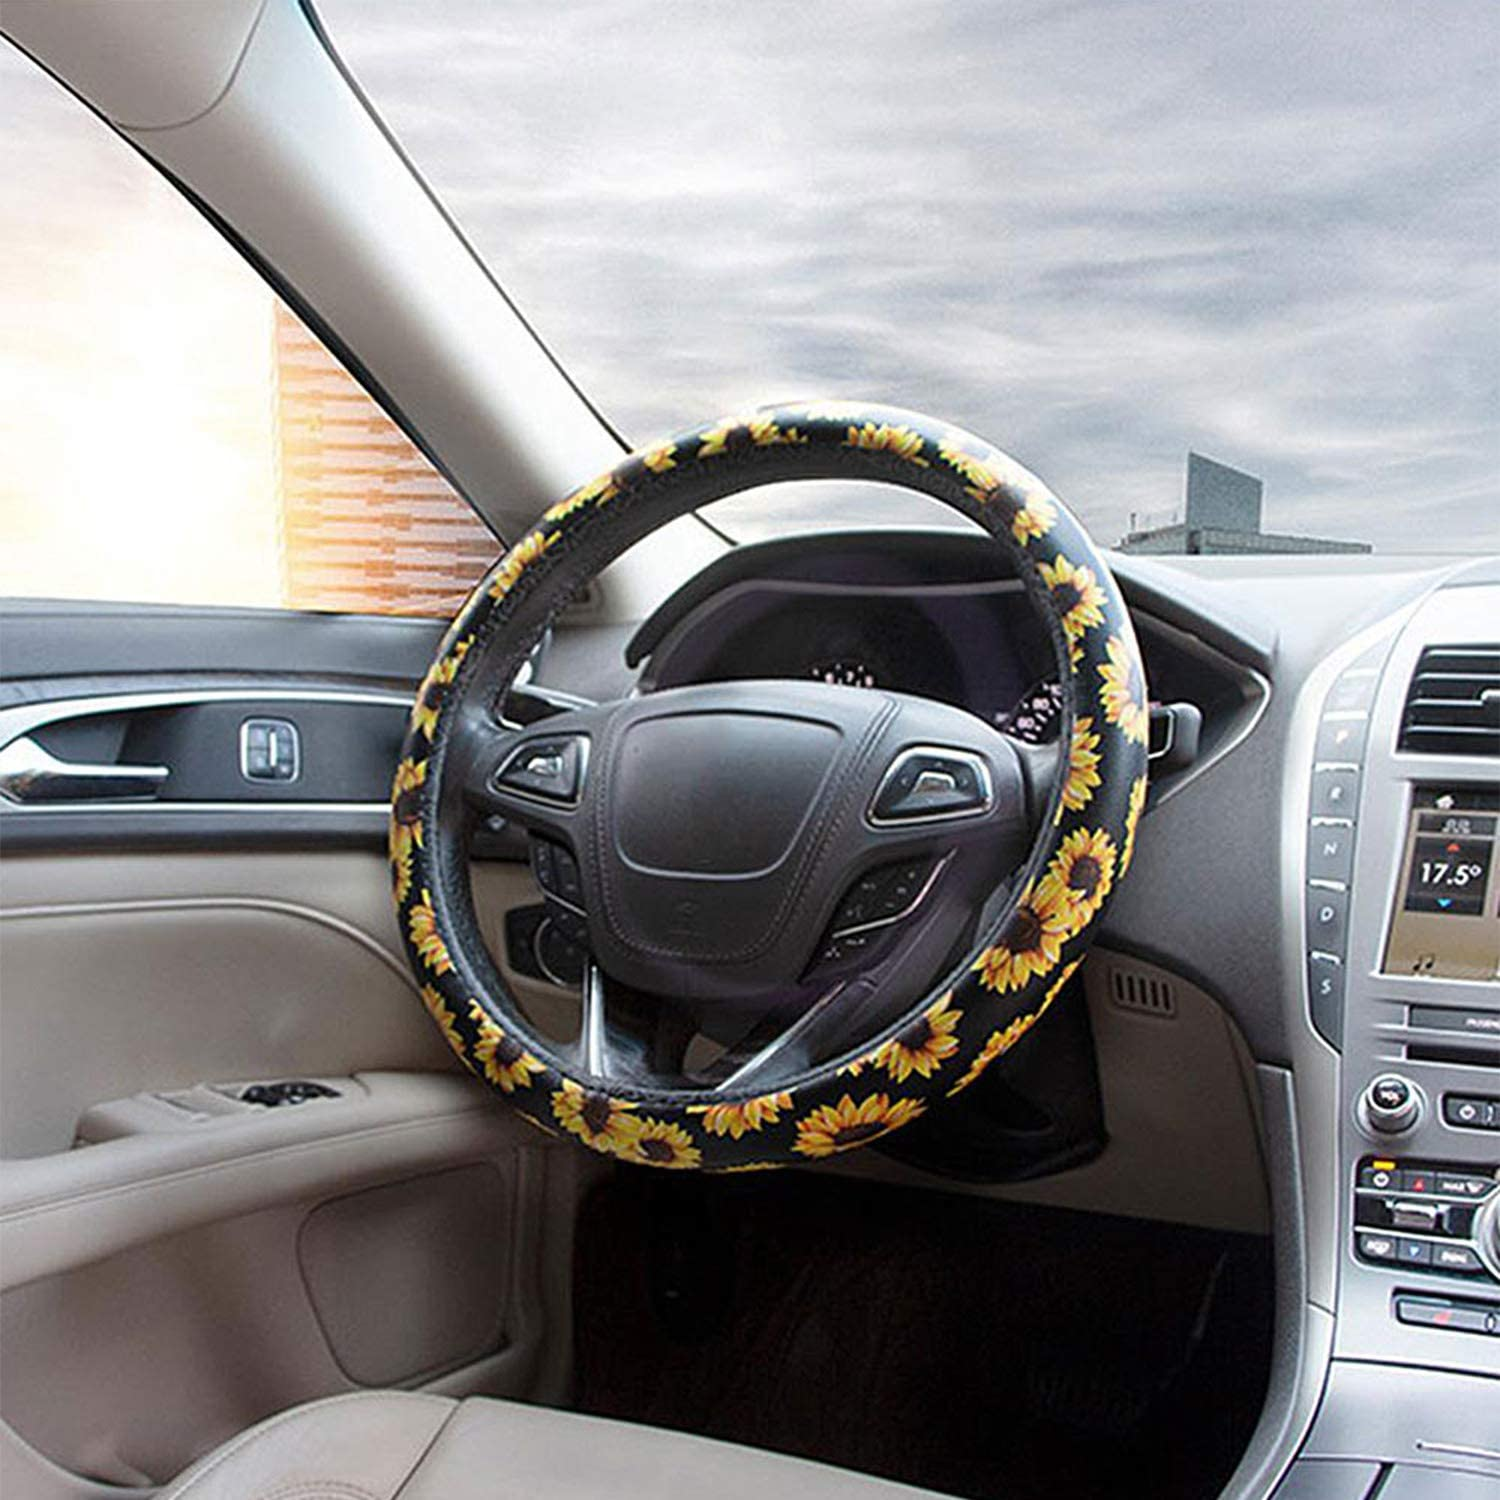 3PCS Sunflower Accessories for Car Wheel Cover,2PCS Car Cup Holder Coaster